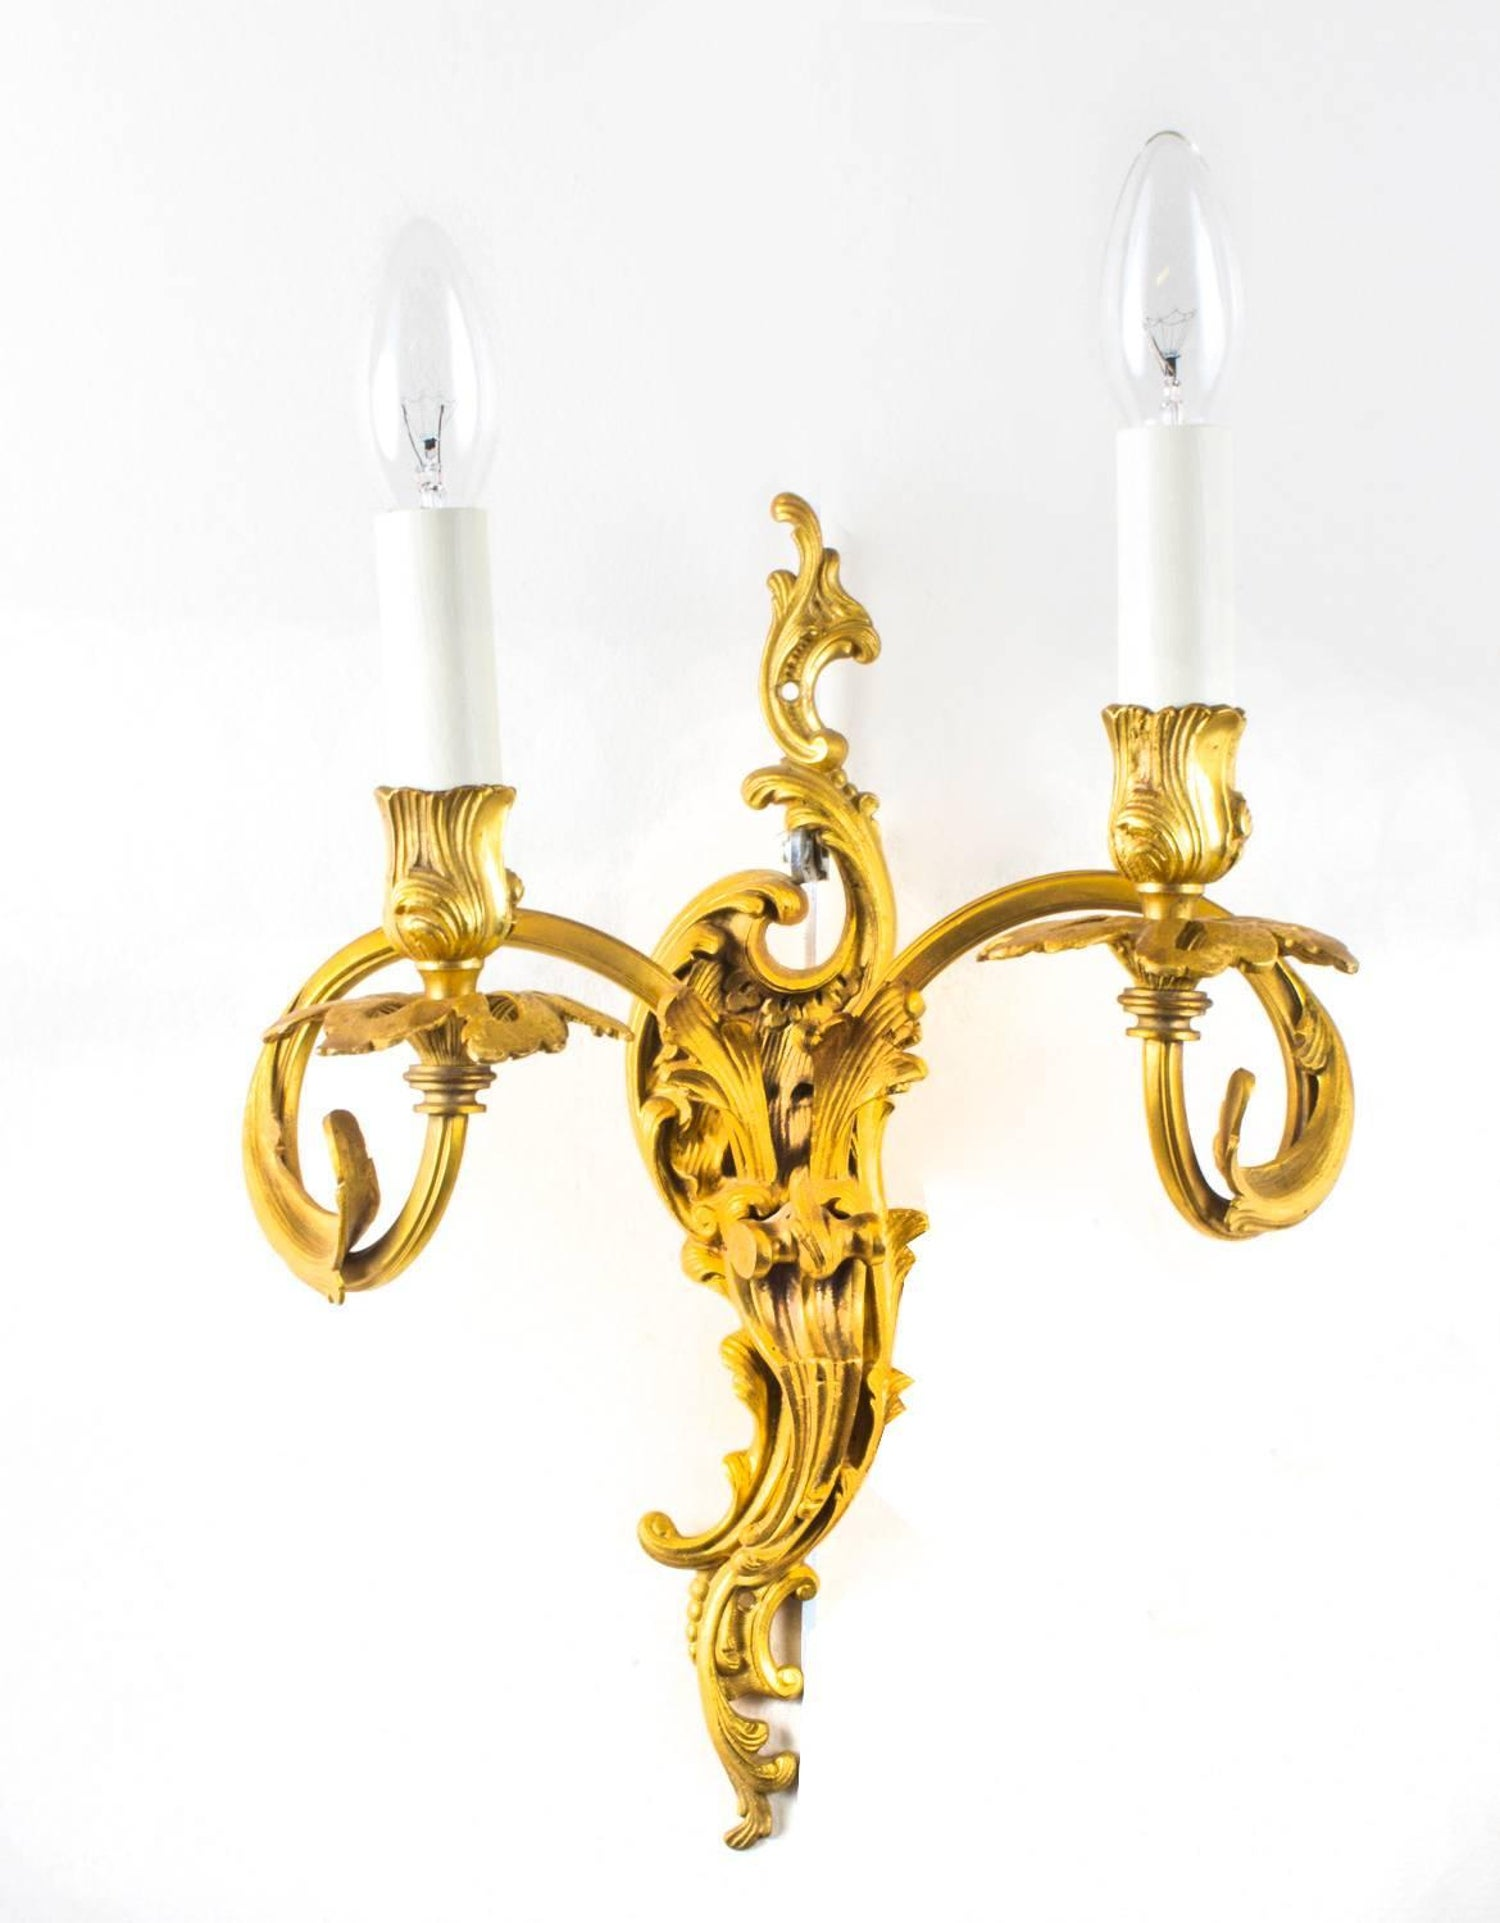 Early 20th century set of four gilded bronze rococo ormolu wall early 20th century set of four gilded bronze rococo ormolu wall lights at 1stdibs aloadofball Gallery